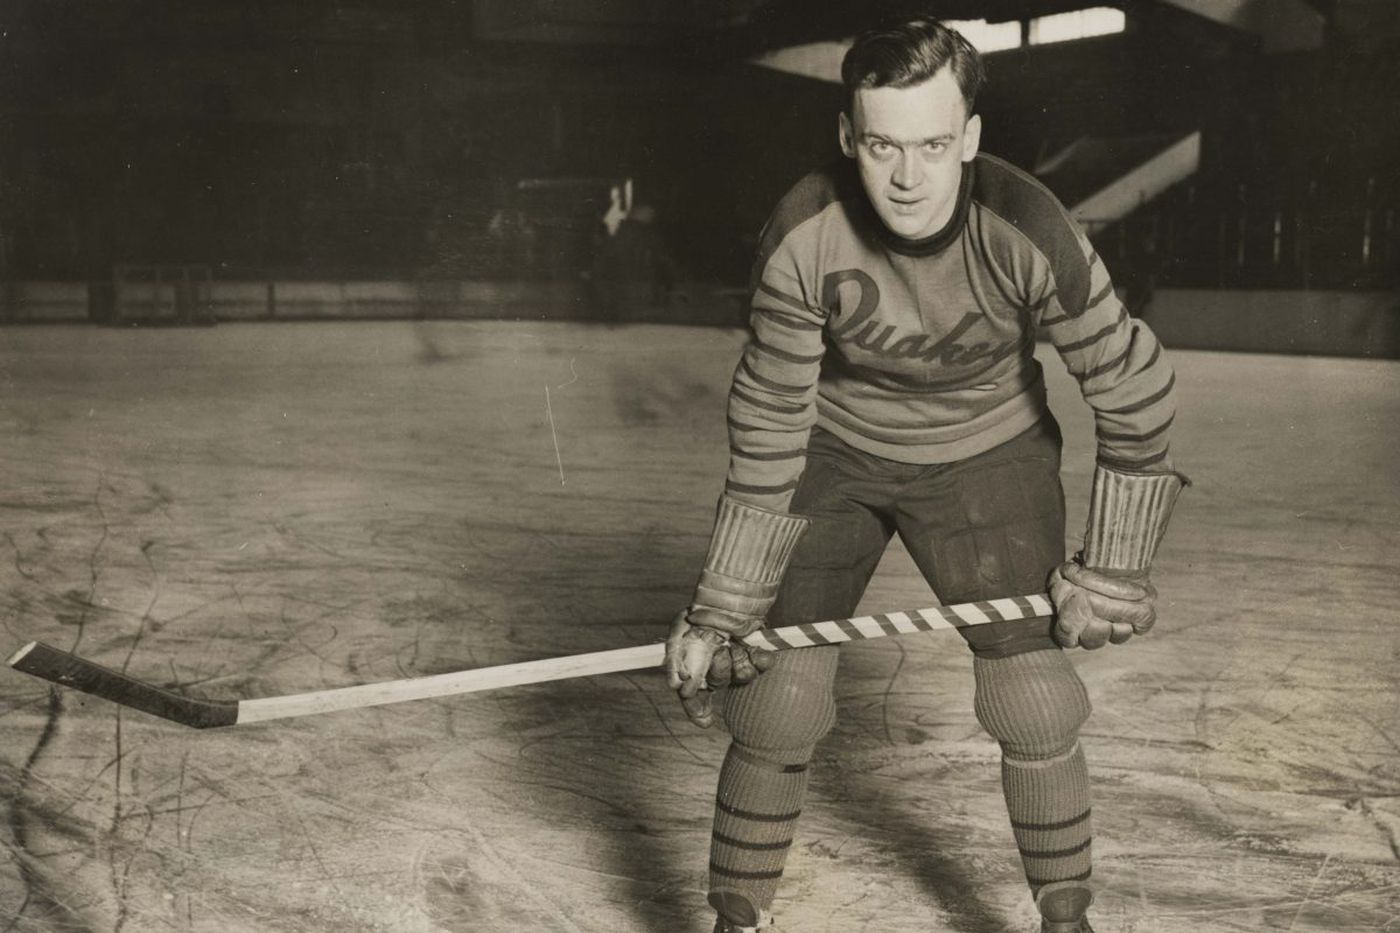 Pro hockey in Philly, before the Flyers